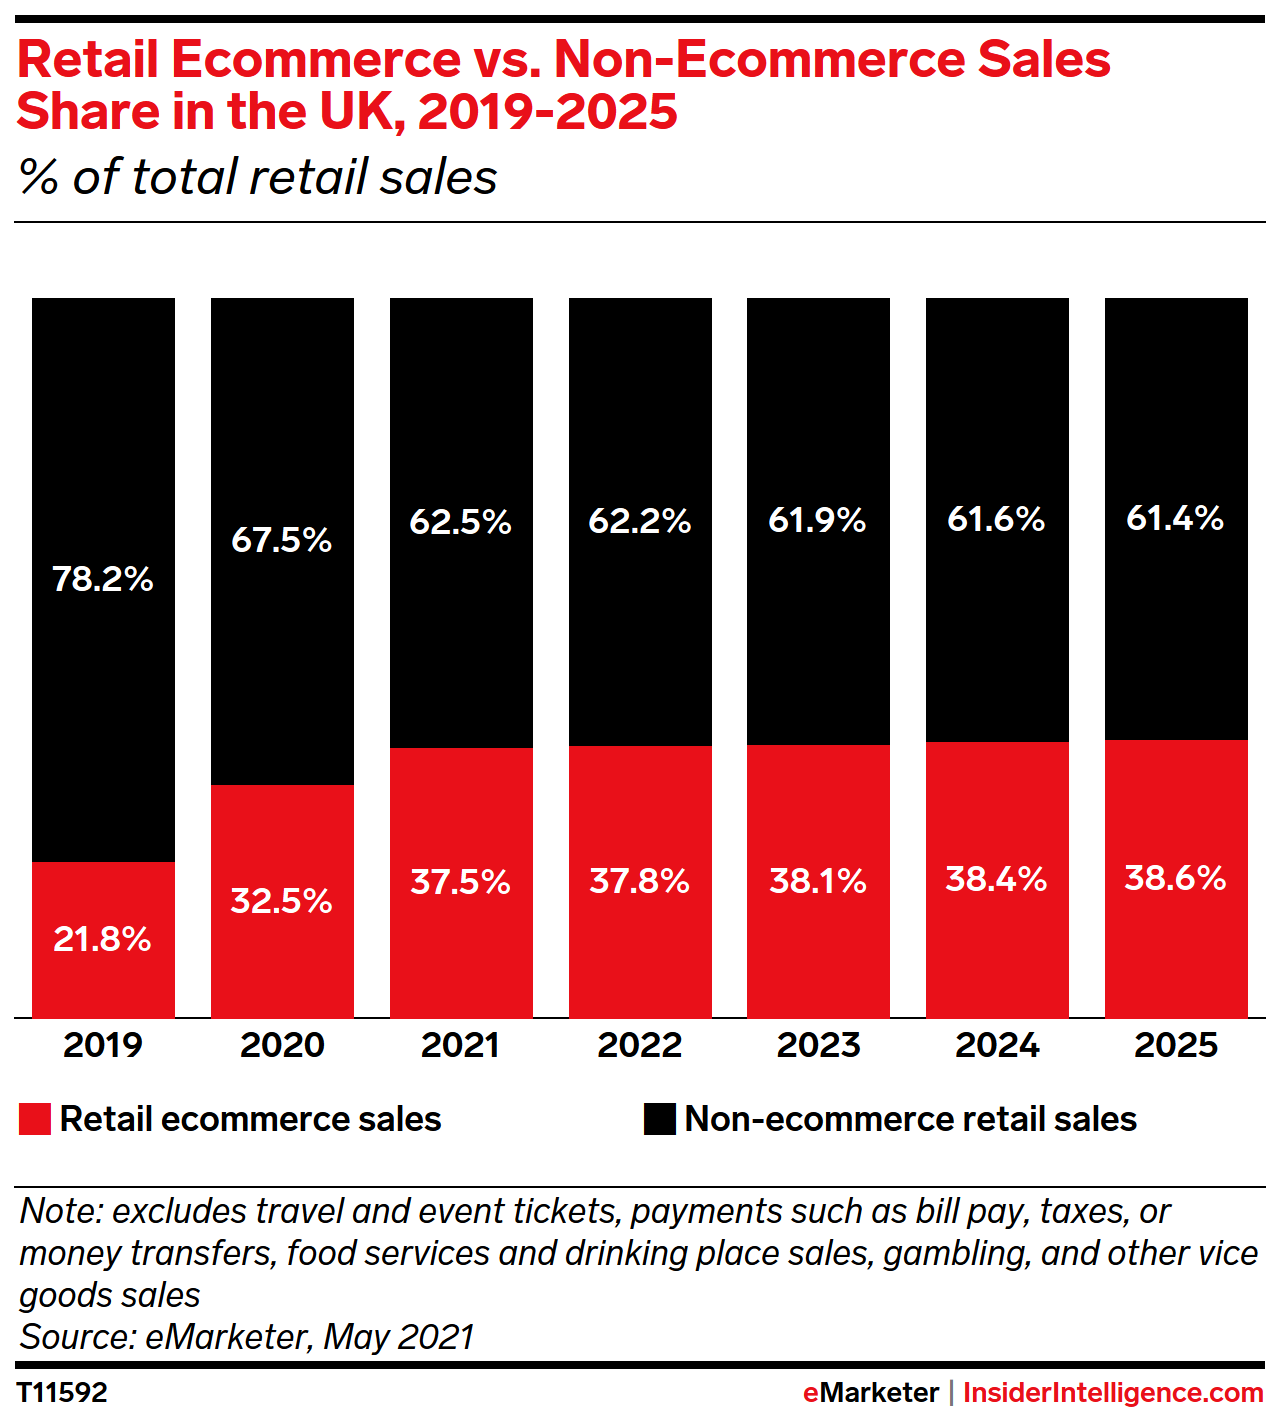 Retail Ecommerce vs. Non-Ecommerce Sales Share in the UK, 2019-2025 (% of total retail sales)